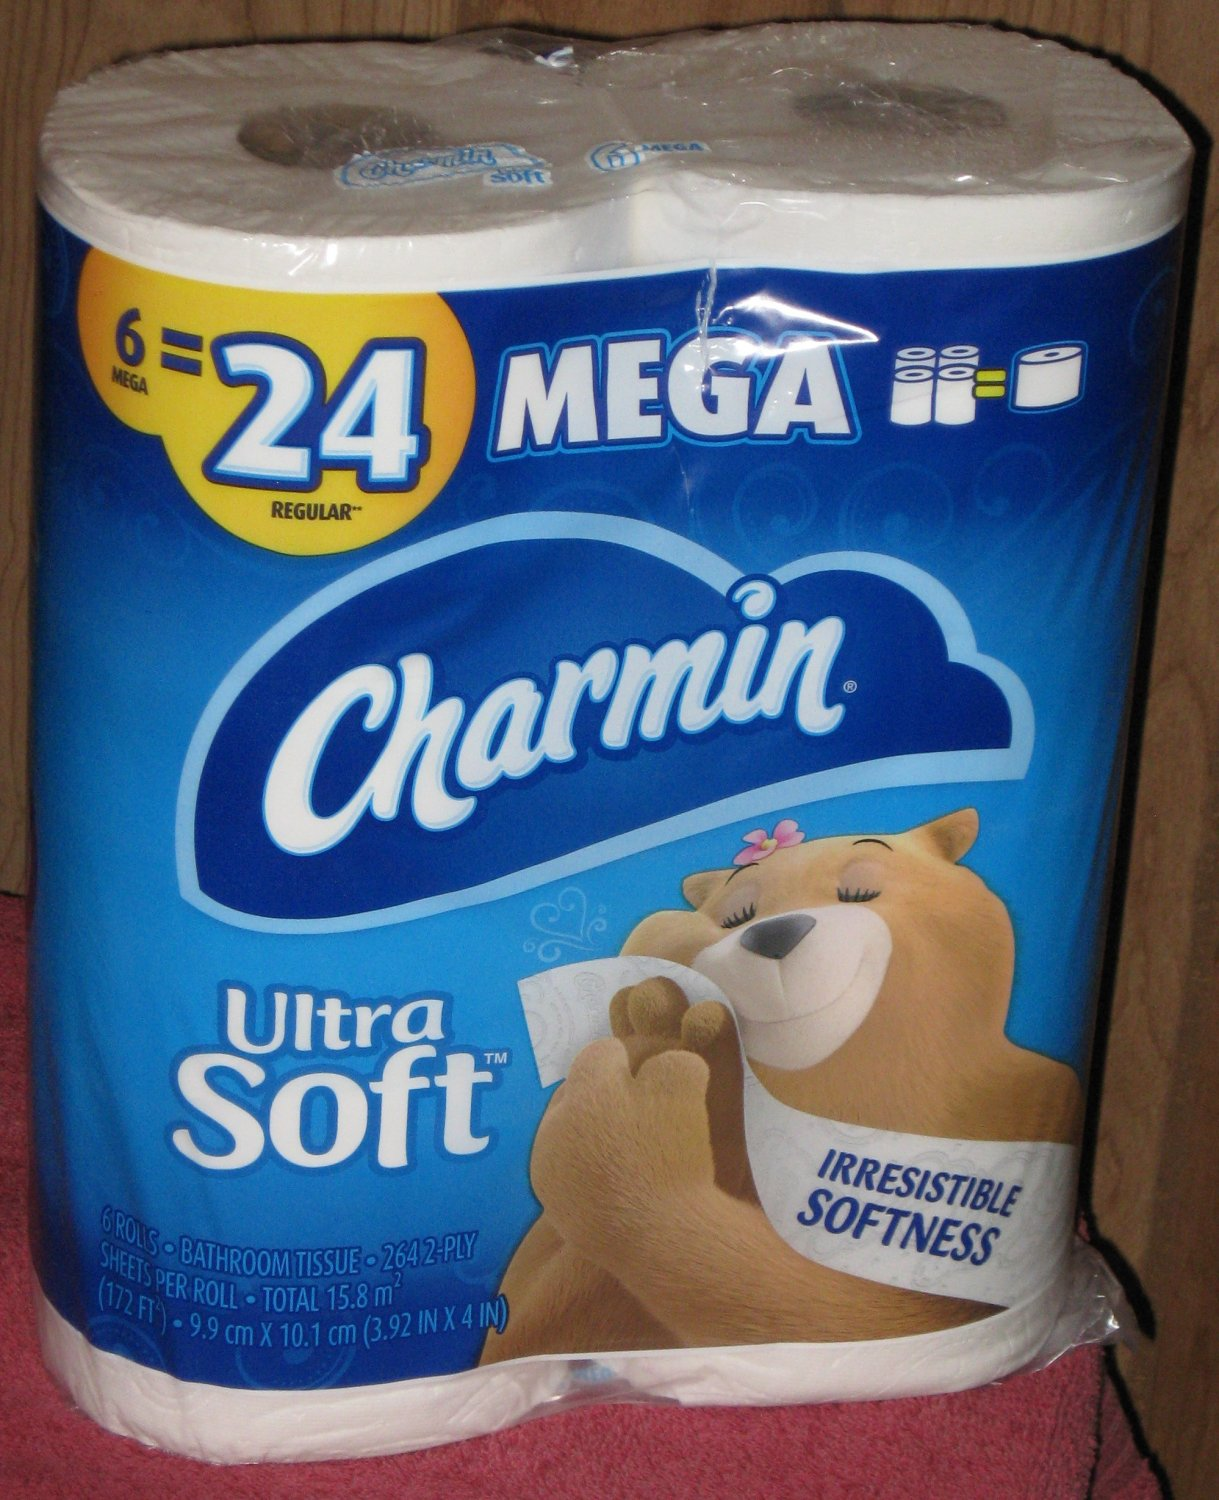 (1) Package Of (6) Mega Rolls Ultra Soft Charmin Toilet Paper 6=24